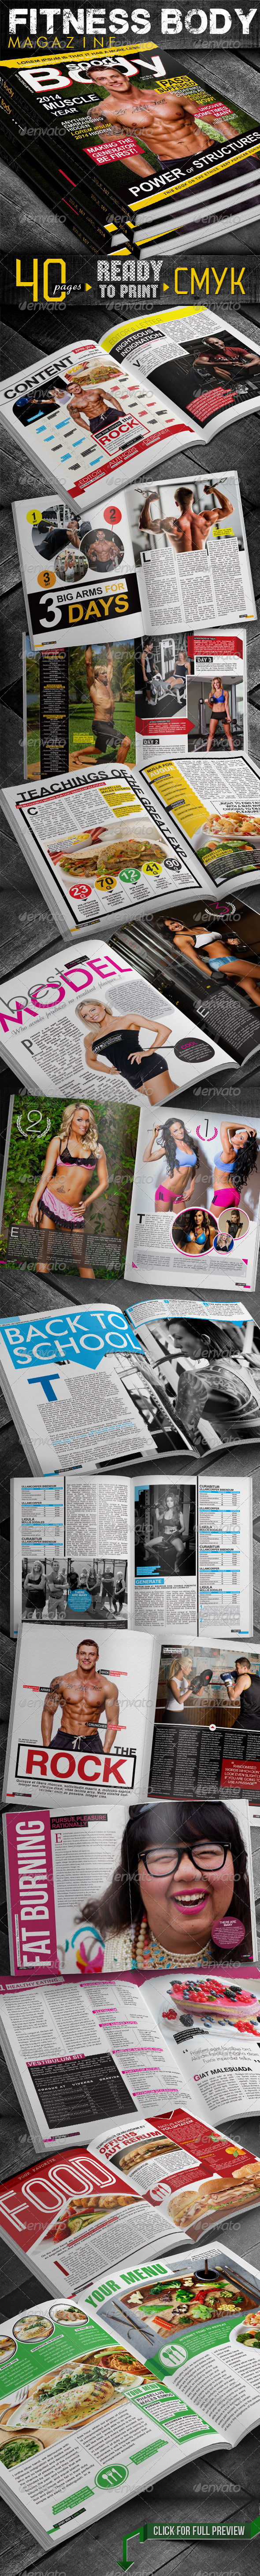 Fitness Body Magazine - Magazines Print Templates